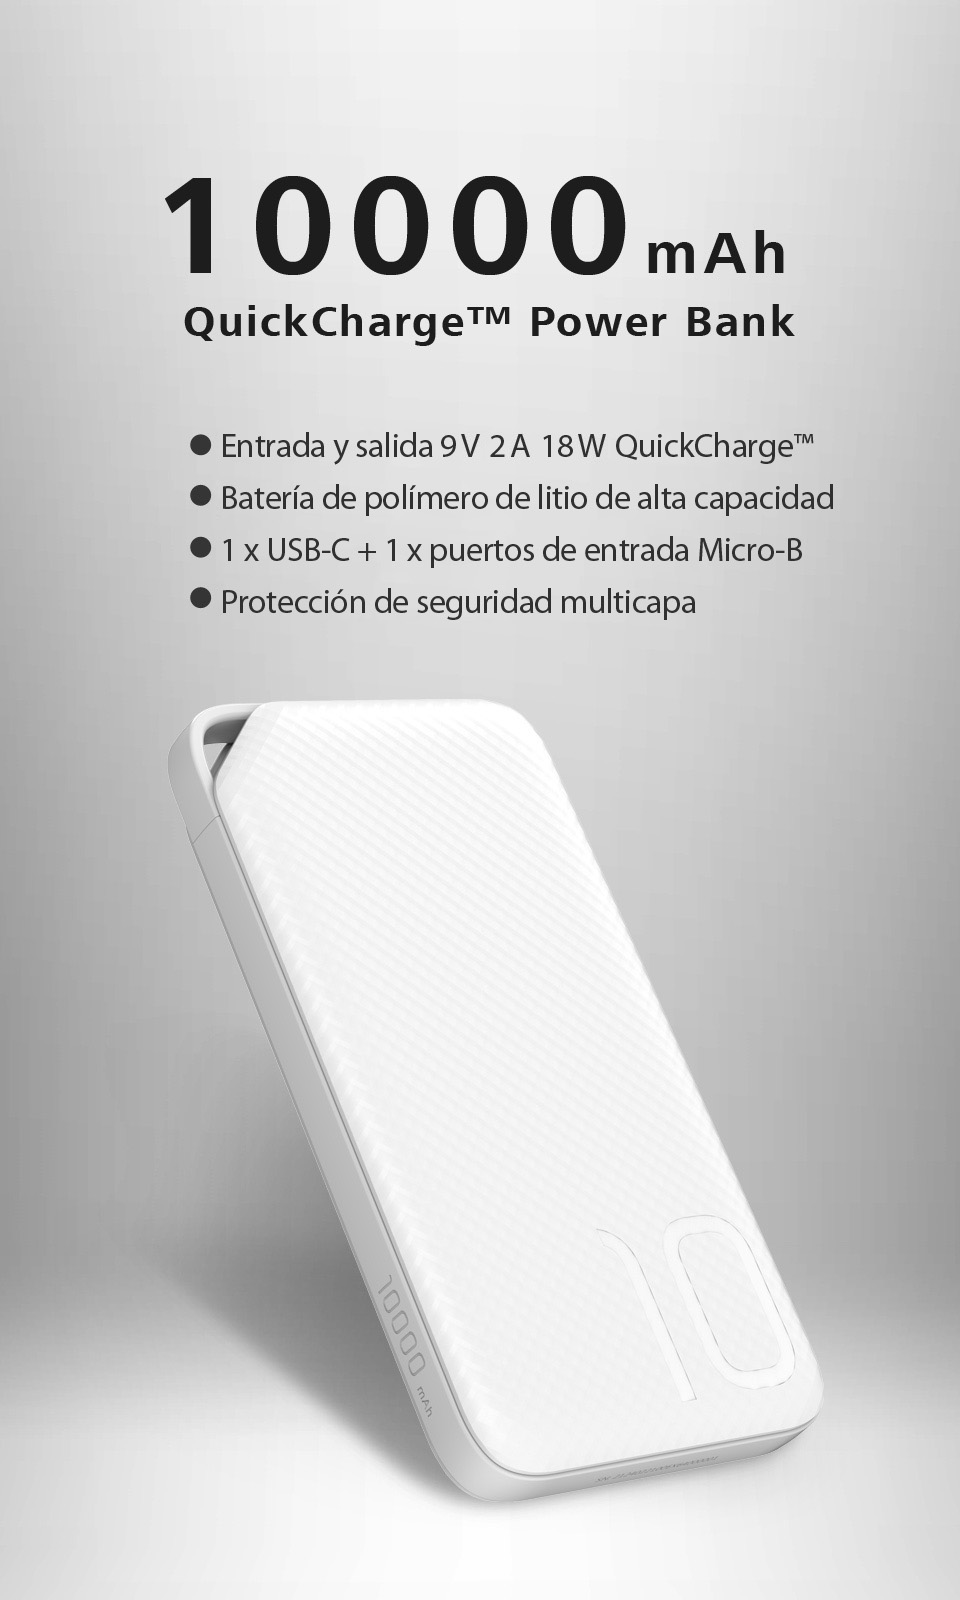 HUAWEI 10000mAh QuickCharge™ Power Bank